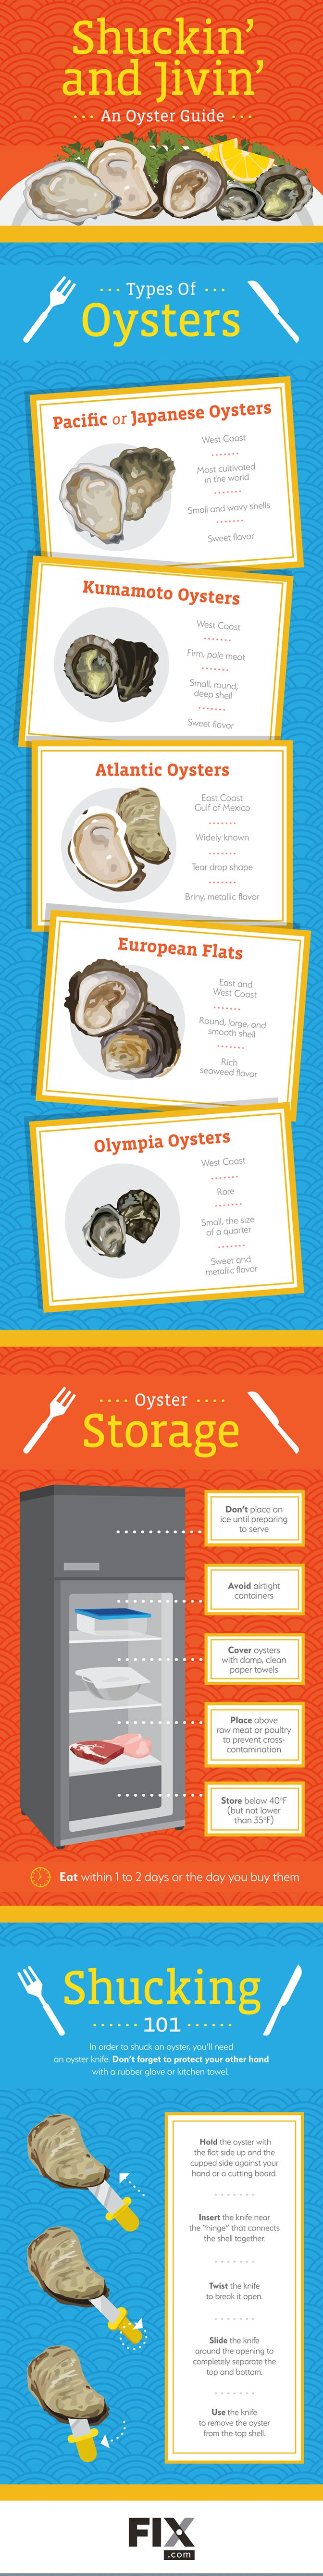 Our guide has everything you need to know about storing, shucking, and eating oysters, whether raw or baked!